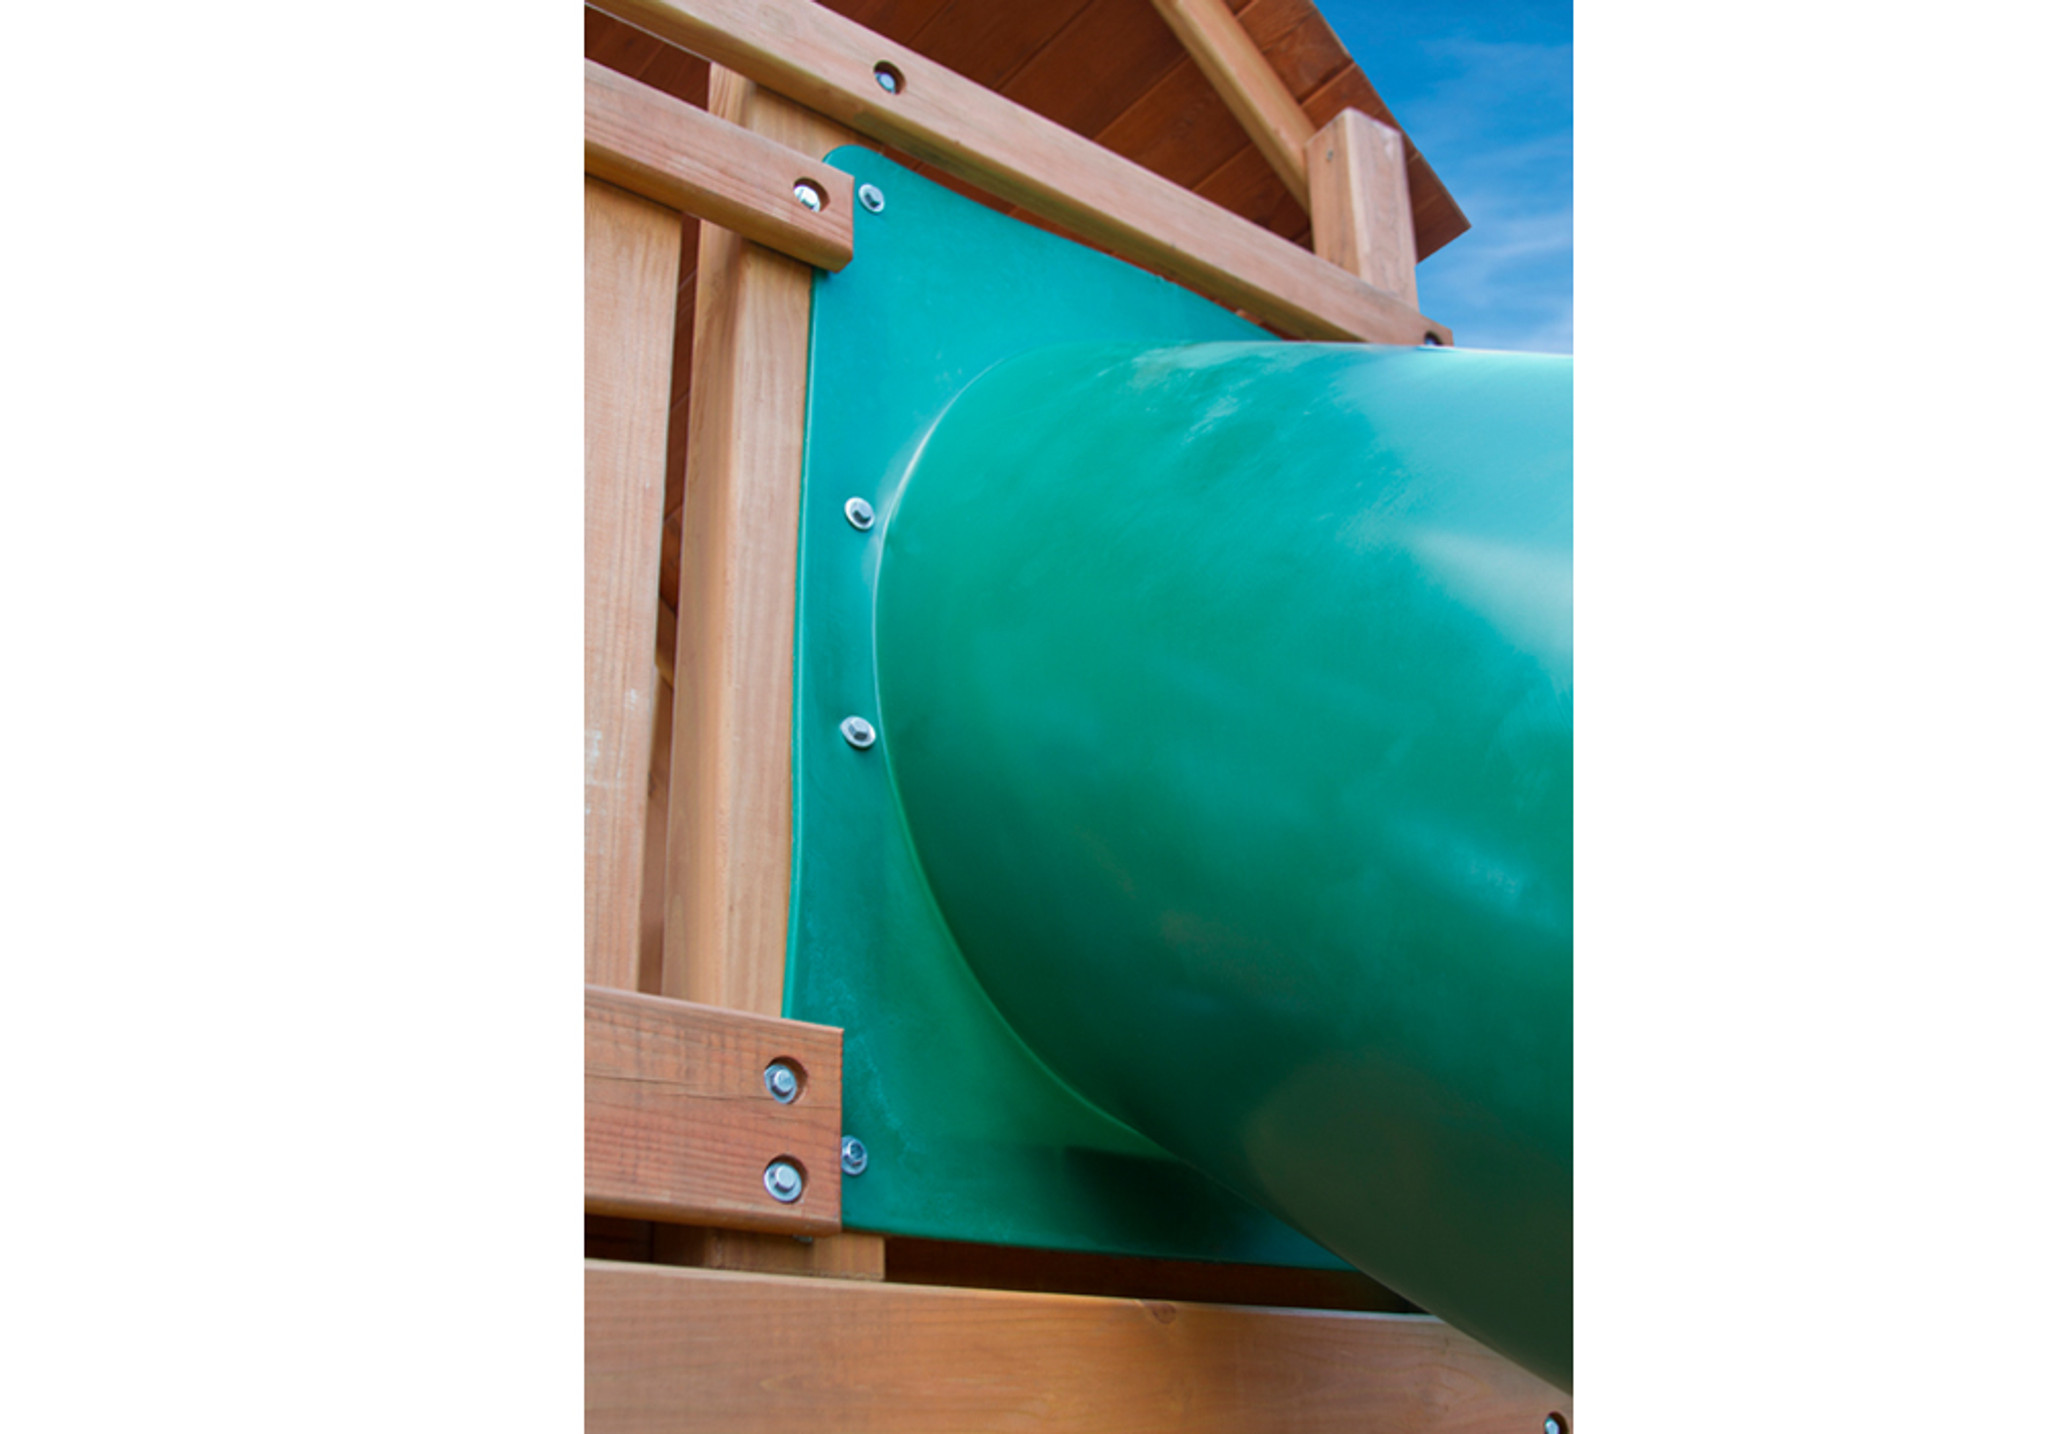 Alt lifestyle shot of Green Super Tube Slide from PlayNation Play Systems.